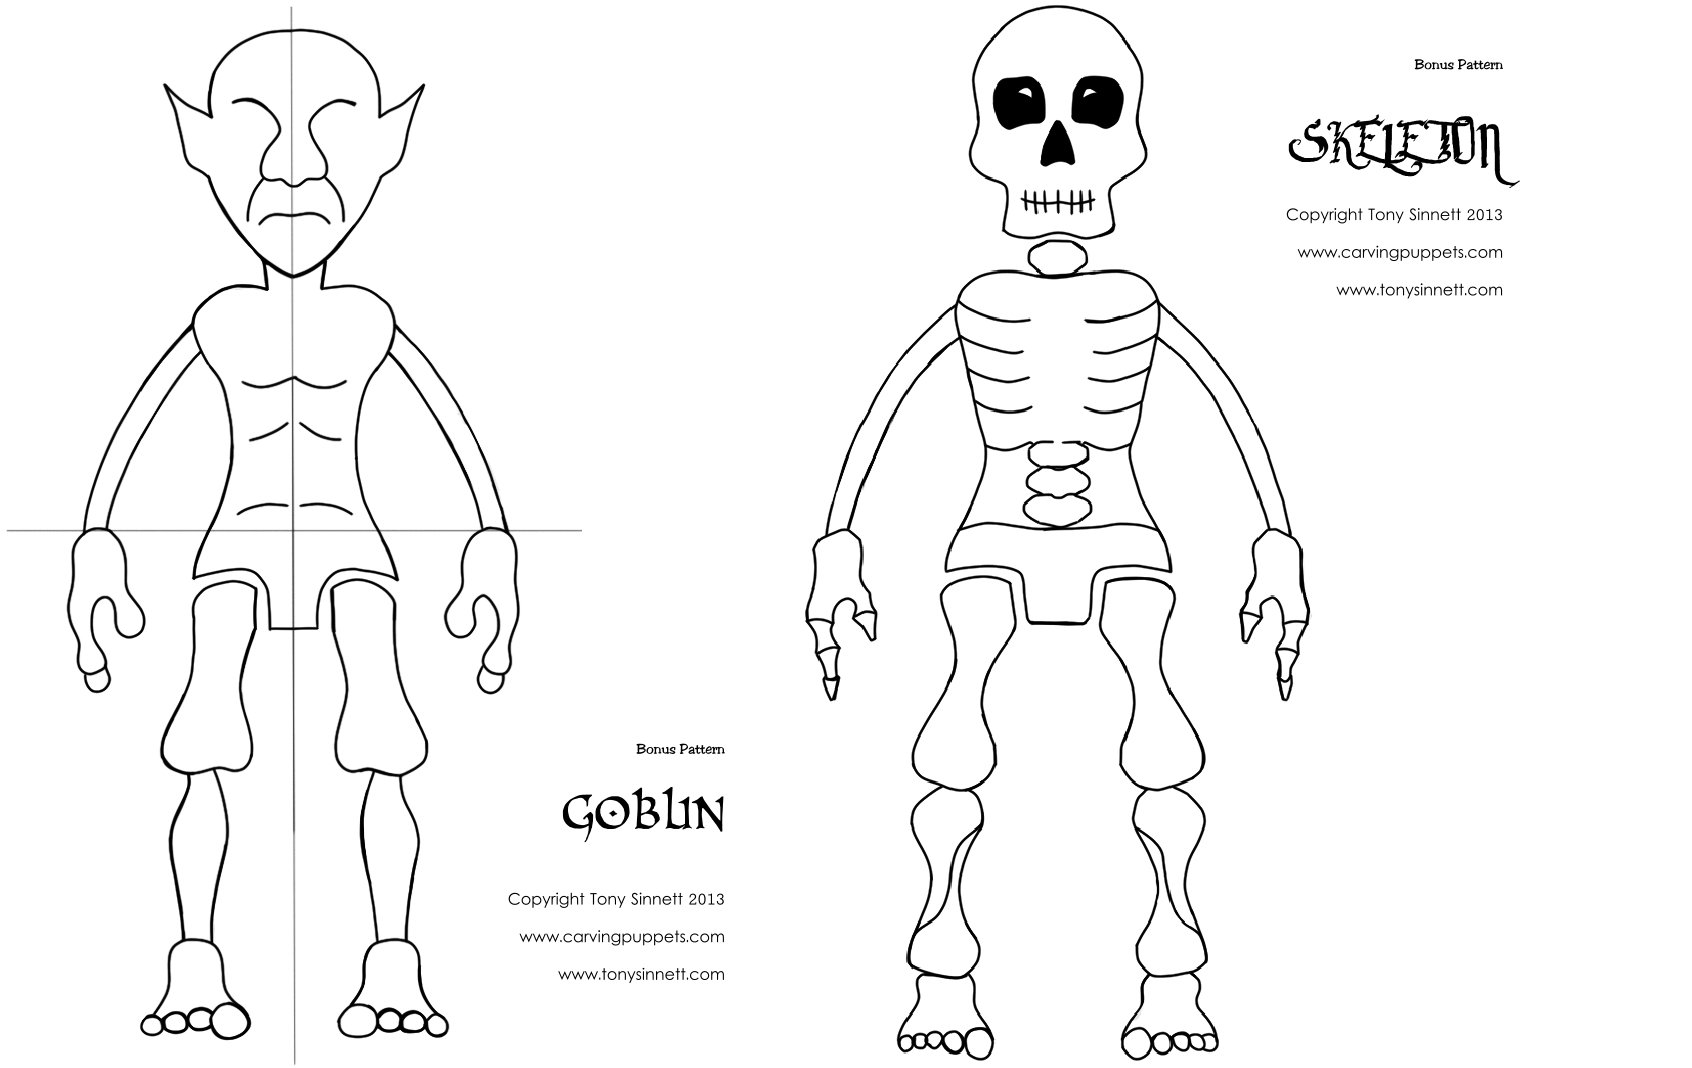 Skeleton and Goblin Simple Marionette Plans